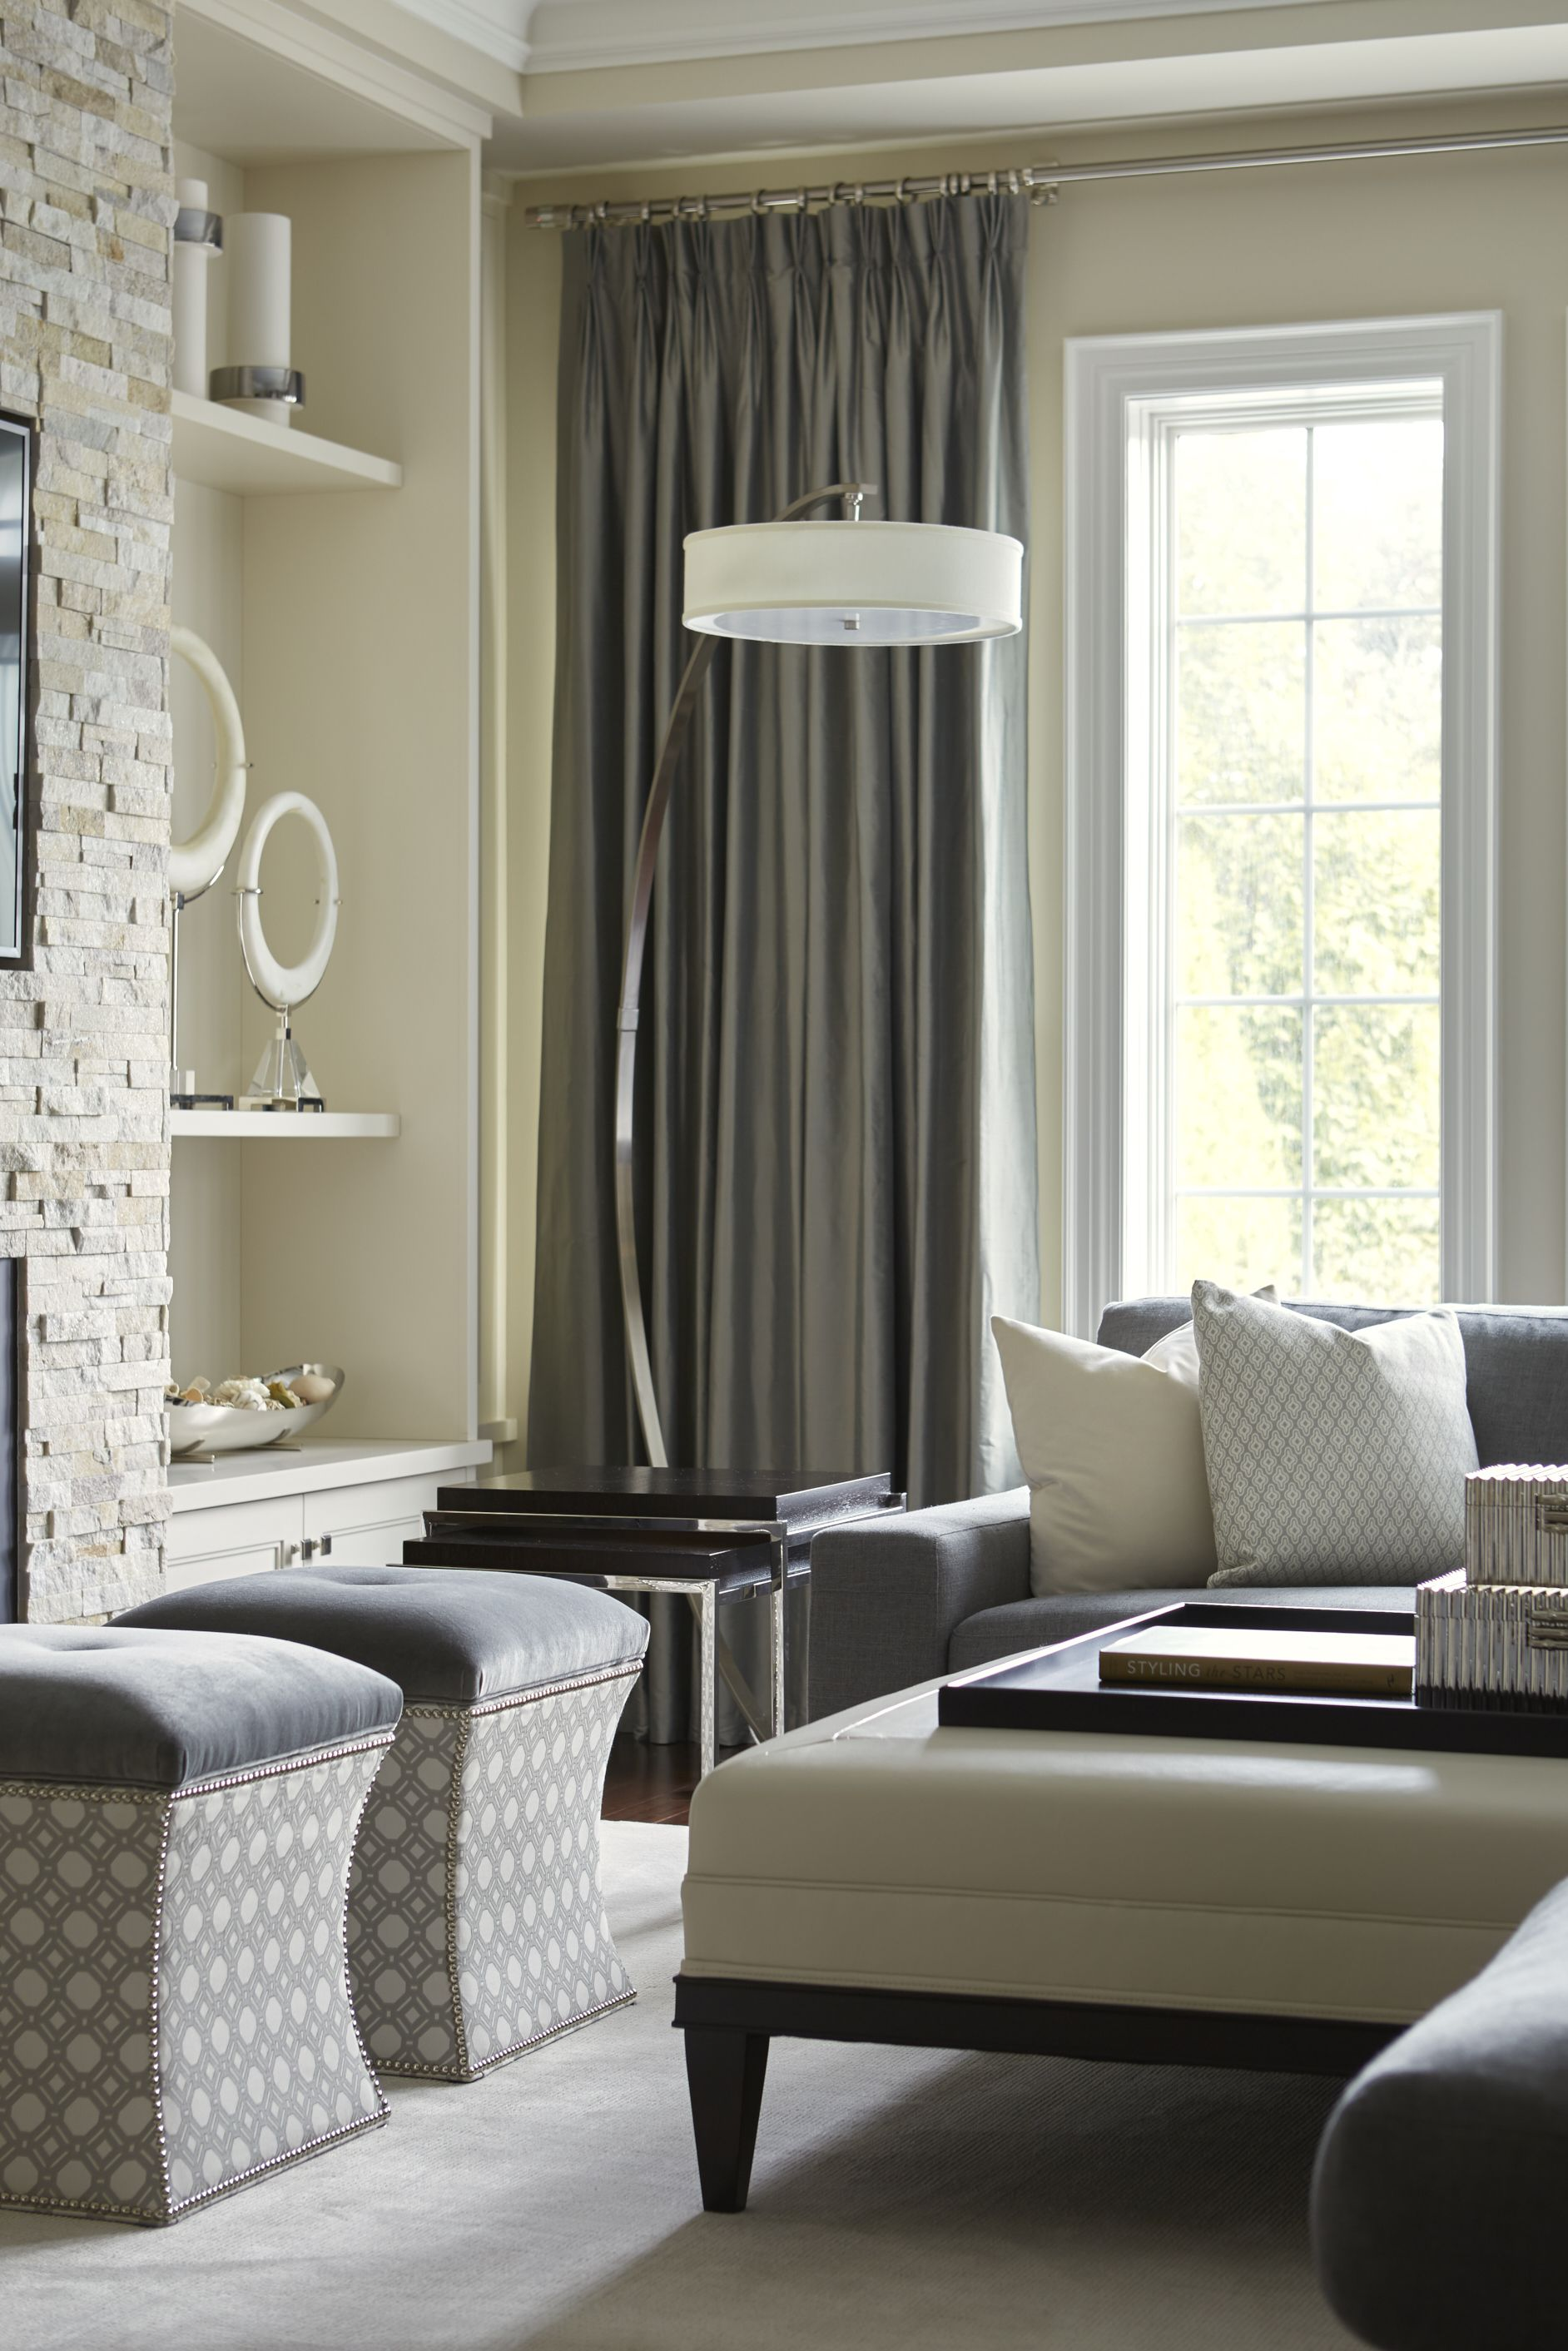 A Transitional Style Great Room By Parkyn Design Www Parkyndesign Com: Interior Design, Interior, Monochromatic Room